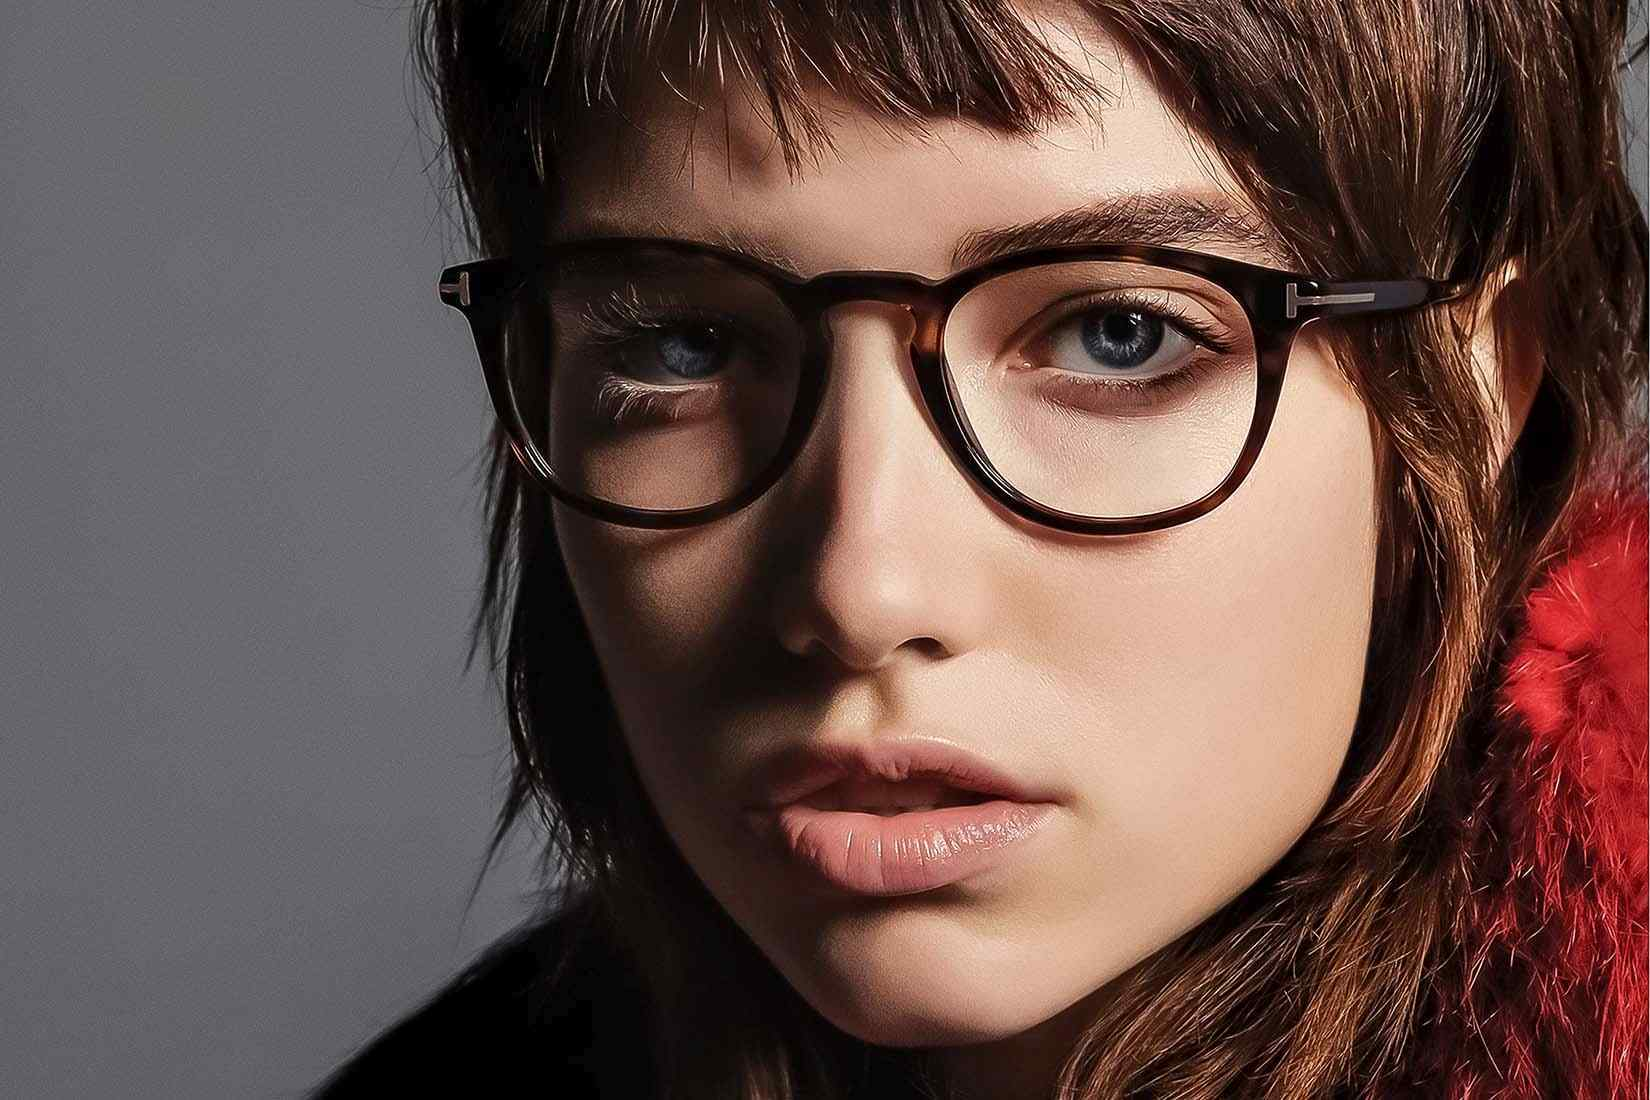 Tom Ford spectacles: Lady 1650x1100